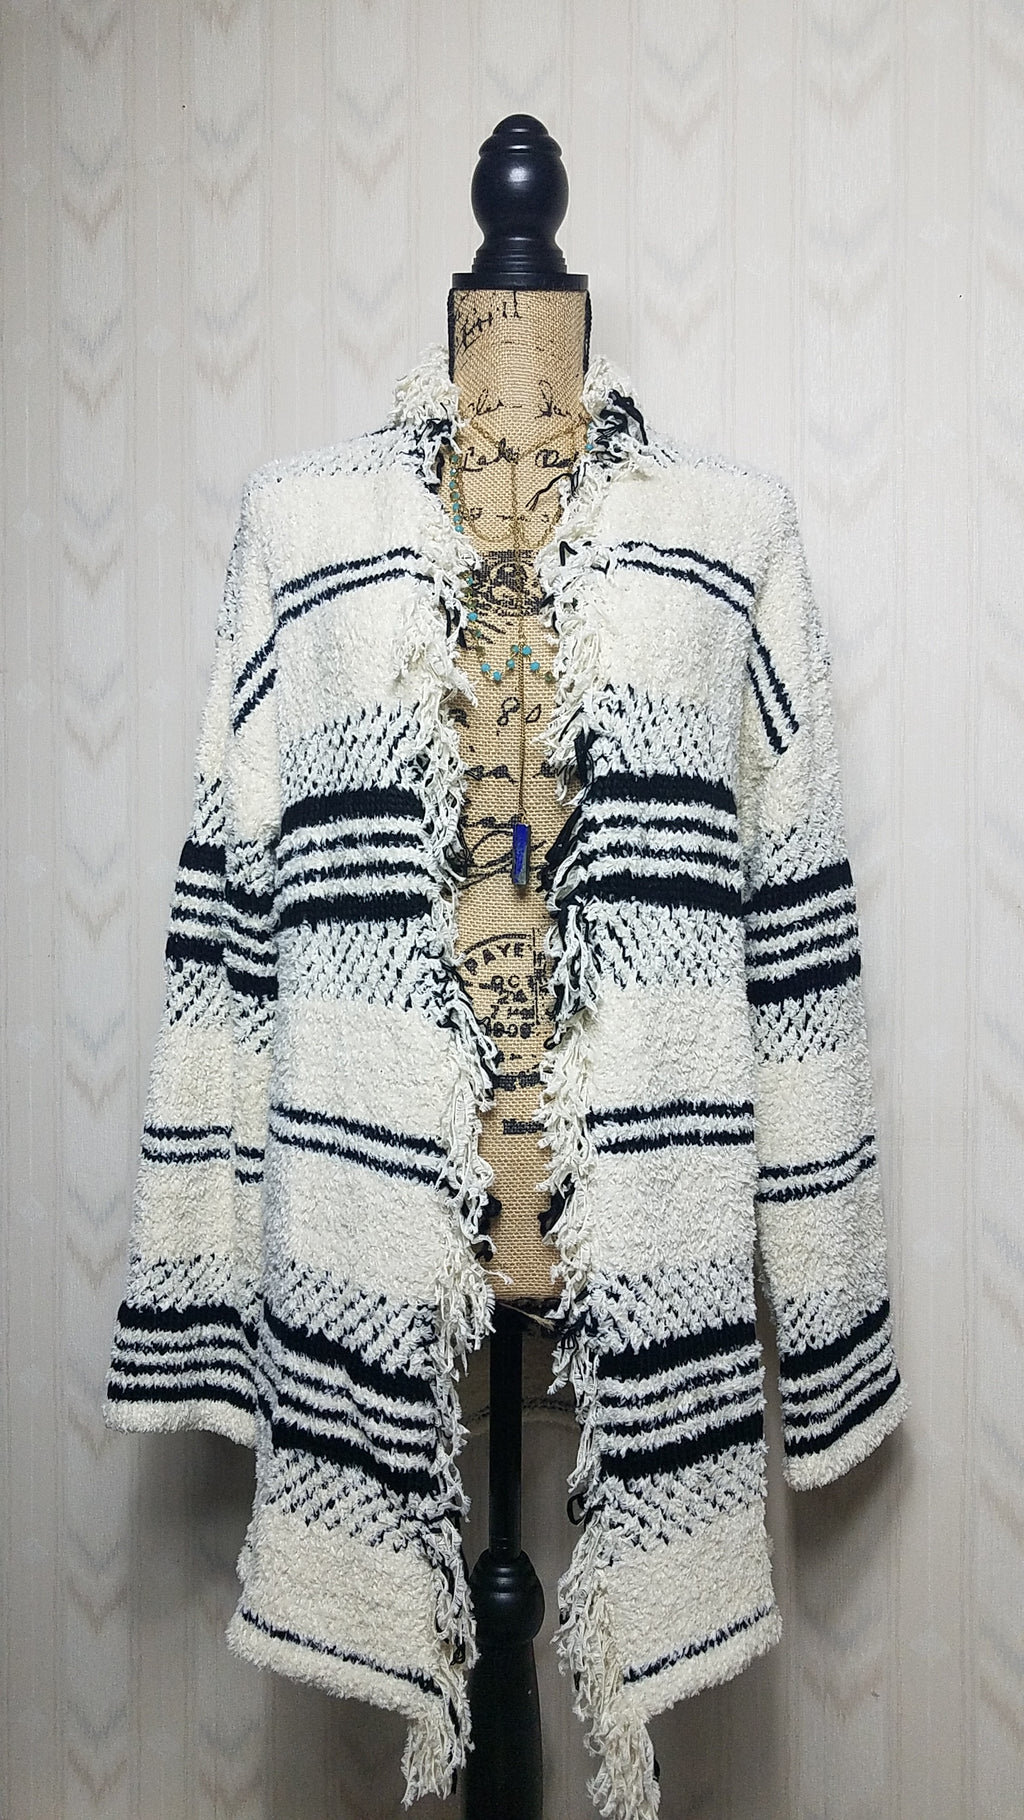 Lana Black and White Fringed Cardigan